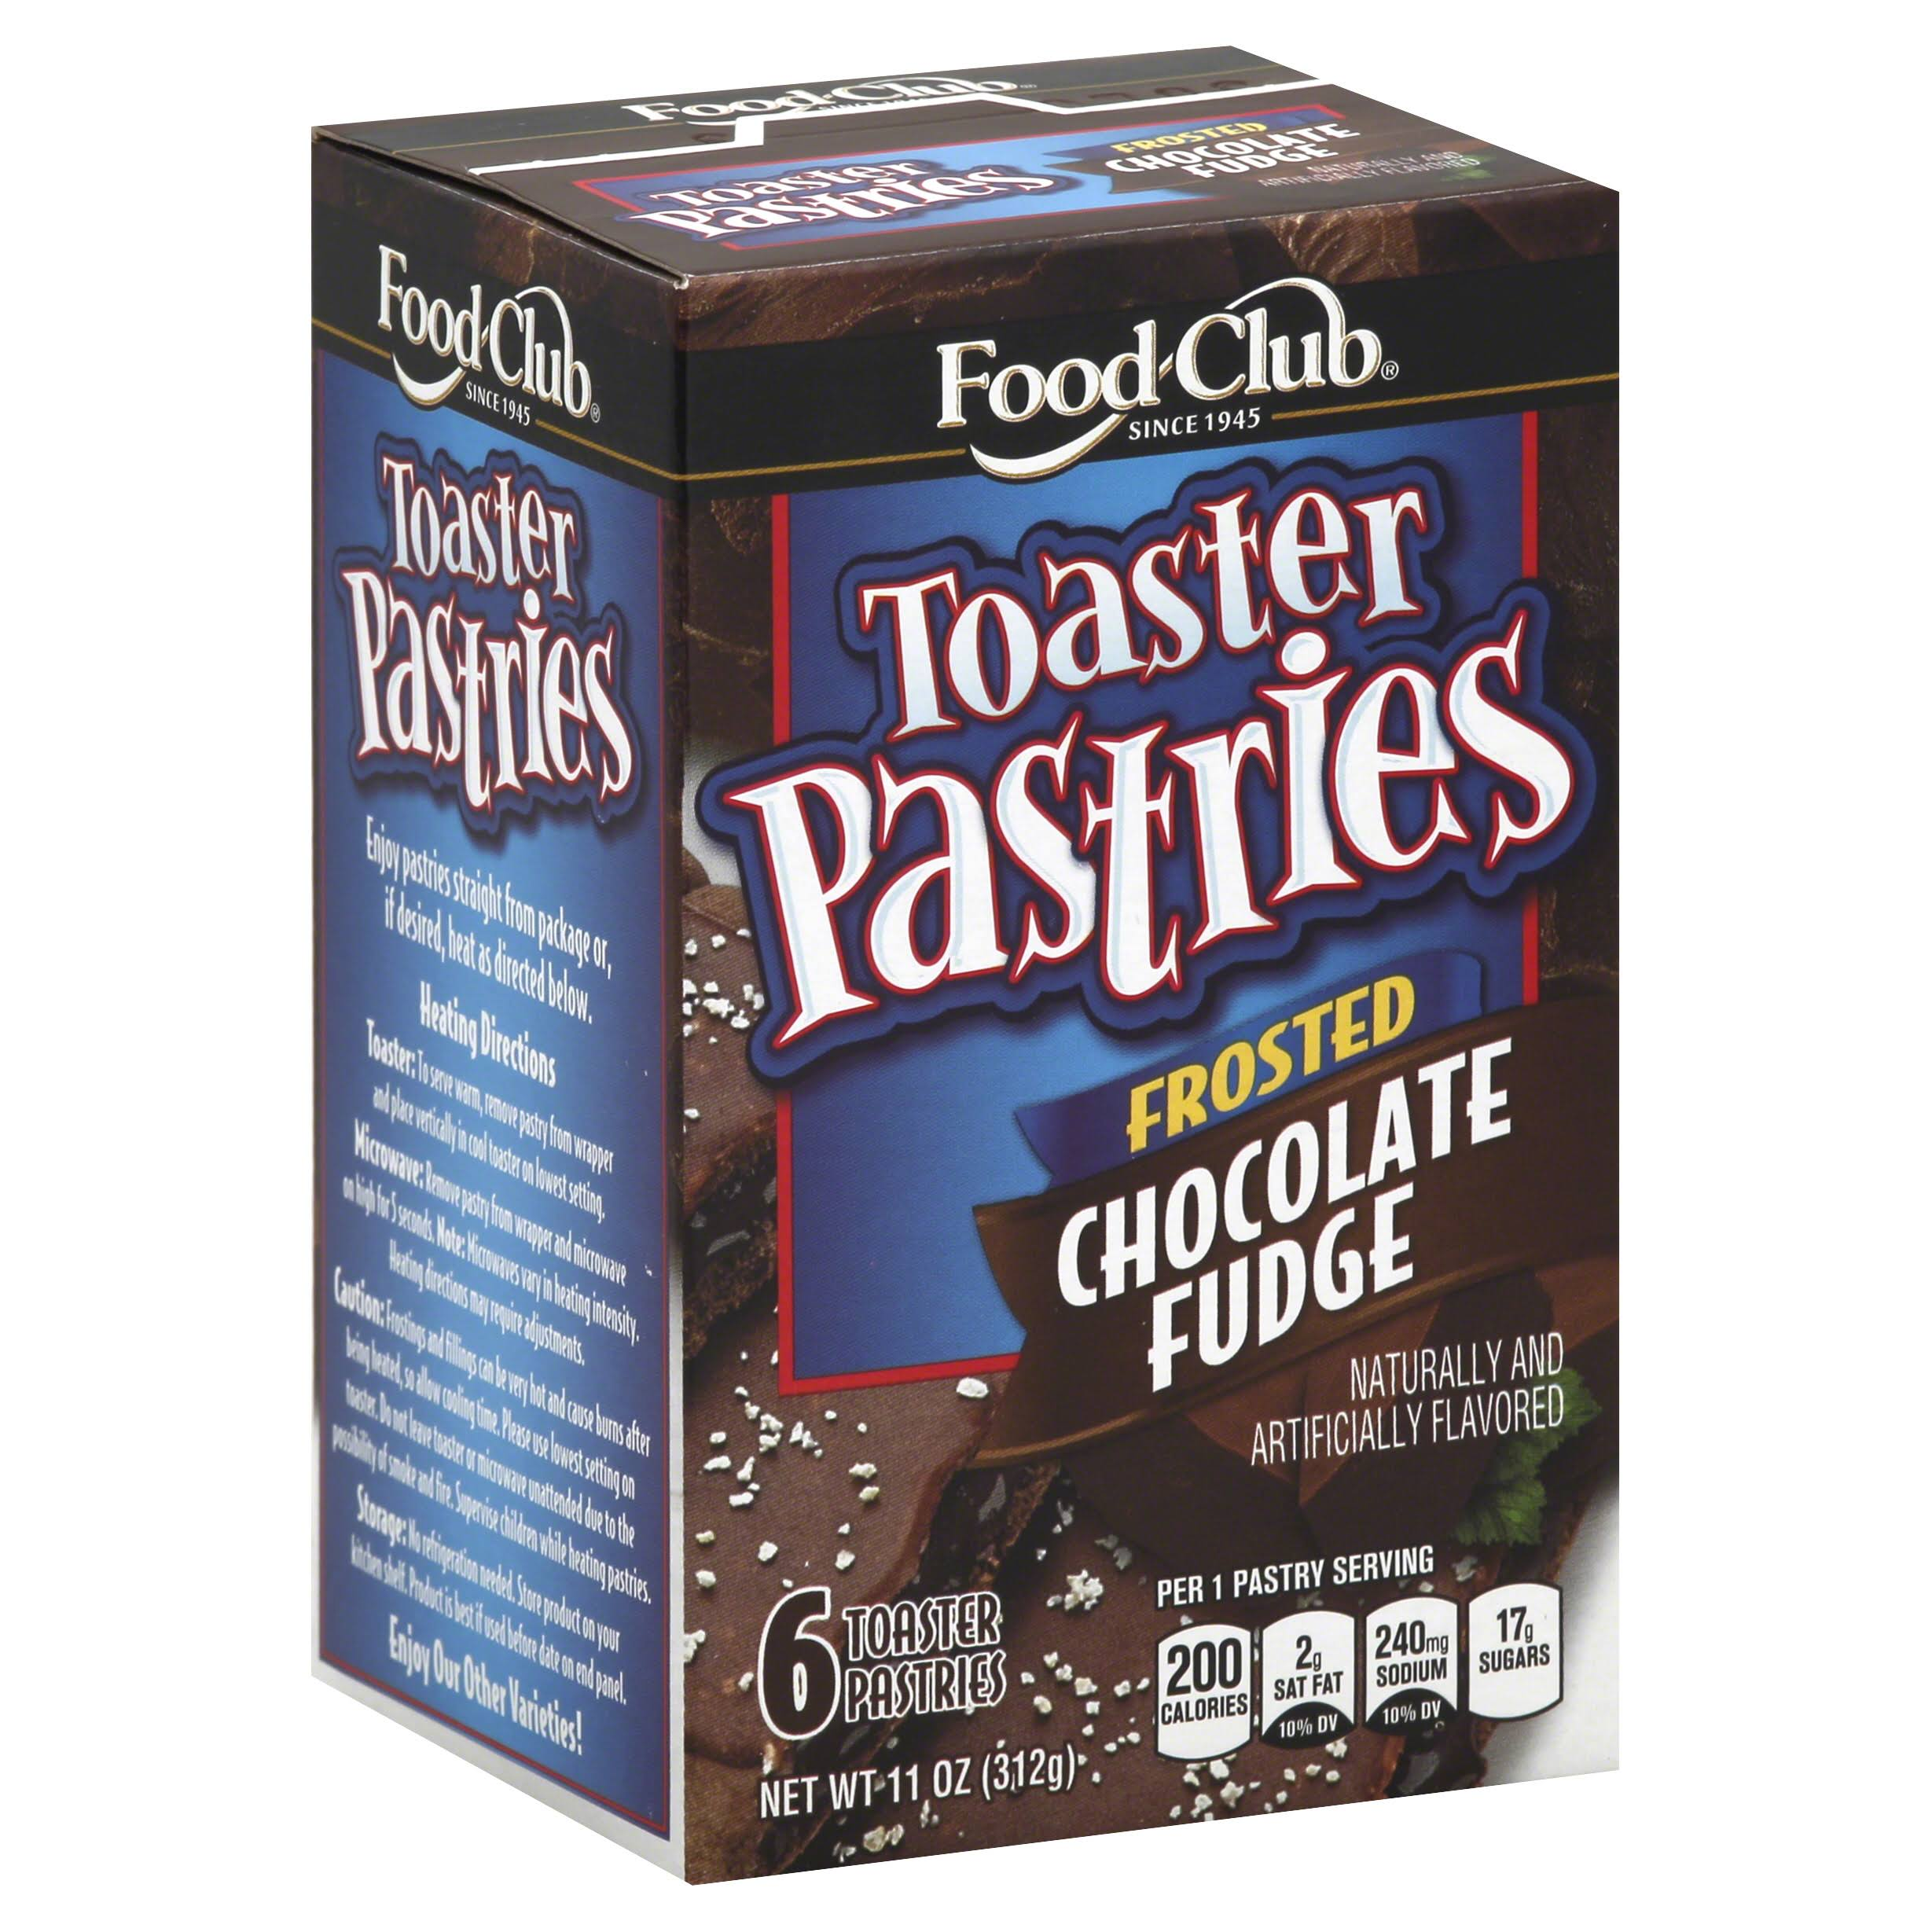 Food Club Toaster Pastries, Frosted, Chocolate Fudge - 6 pastries, 11 oz